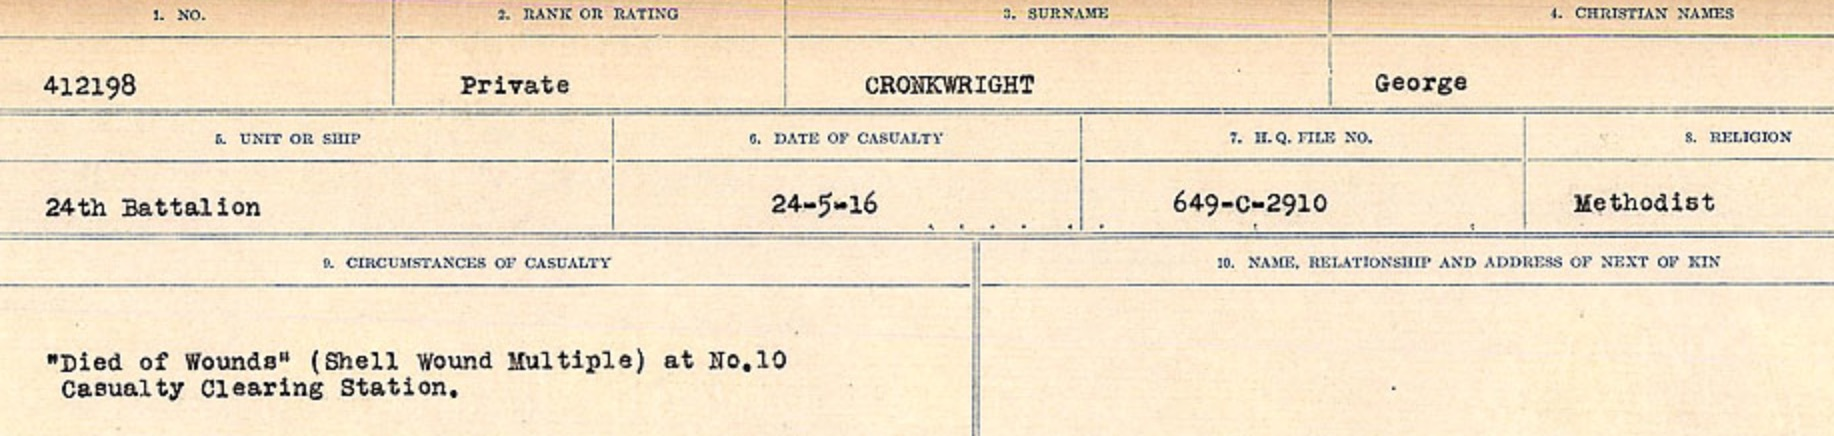 Circumstances of death registers– Source: Library and Archives Canada. CIRCUMSTANCES OF DEATH REGISTERS, FIRST WORLD WAR Surnames: CRABB TO CROSSLAND Microform Sequence 24; Volume Number 31829_B016733. Reference RG150, 1992-93/314, 168. Page 669 of 788.